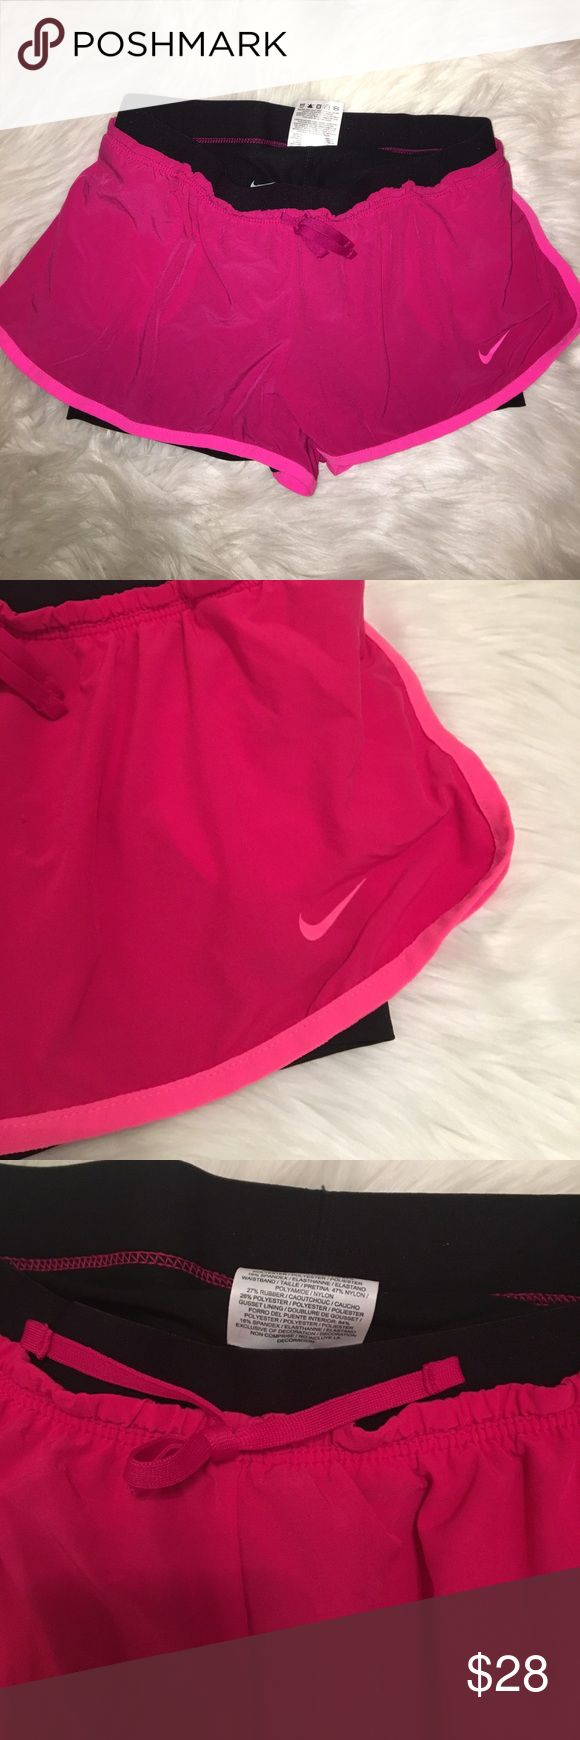 Nike Running Shorts and Spandex This hot pink Nike running shorts have black spandex built into them! Super convenient because it's two purchases in one and fits more comfortable. They're too small on me so I've only worn them once. Dri-Fit material. Nike Shorts Jean Shorts